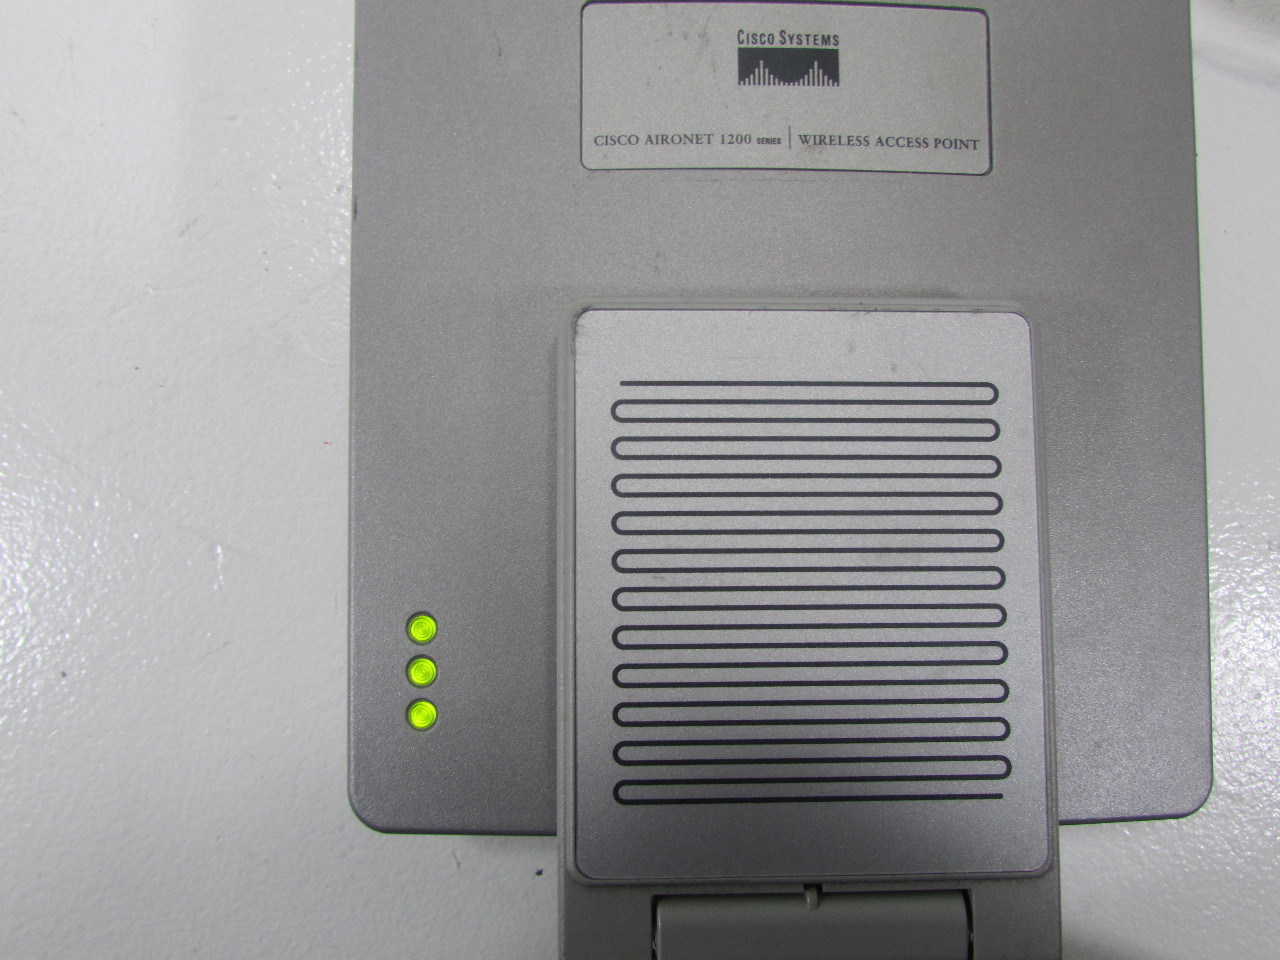 Cisco aironet 1200 Series access Point manual